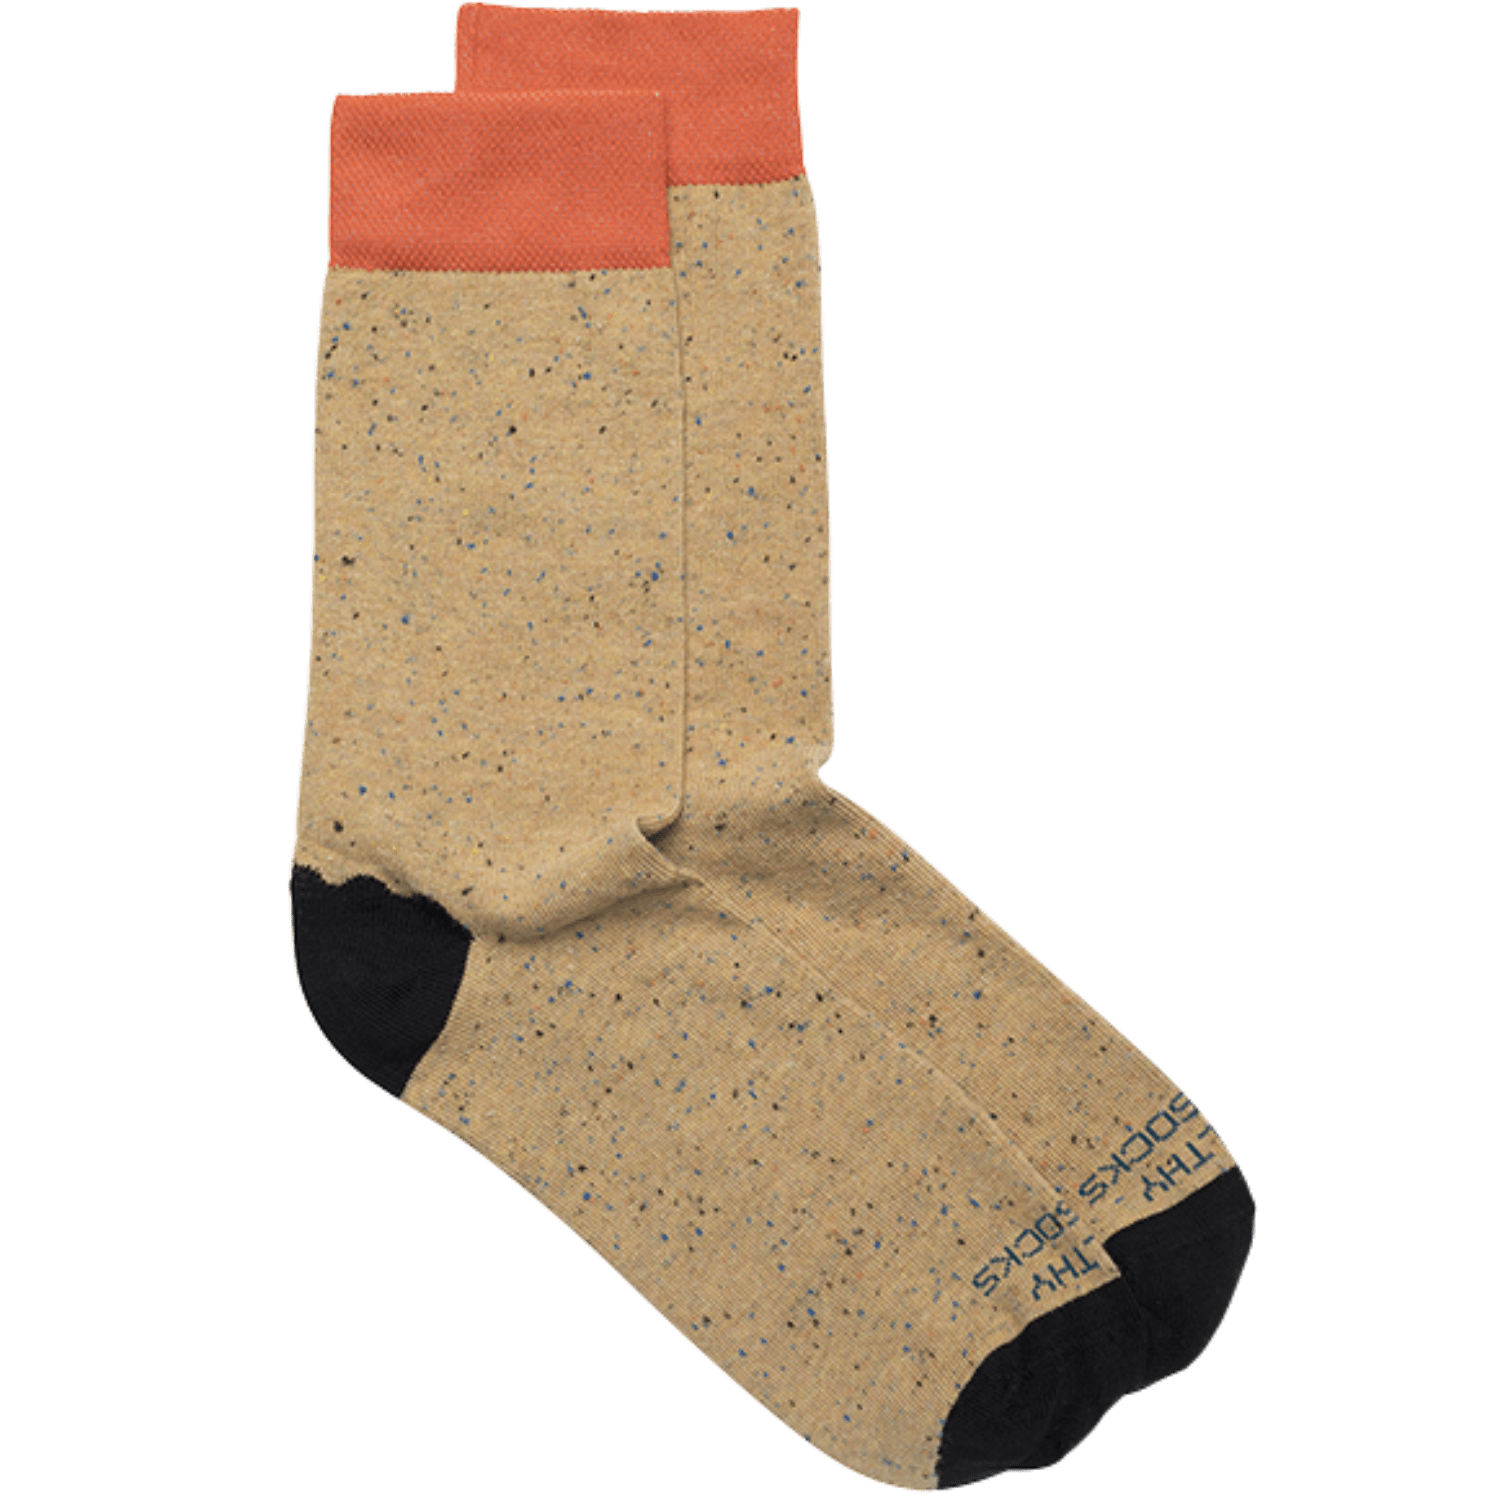 Wolffish men Healthy Seas socks, upcycled from ghost fishing nets, ecological and sustainable